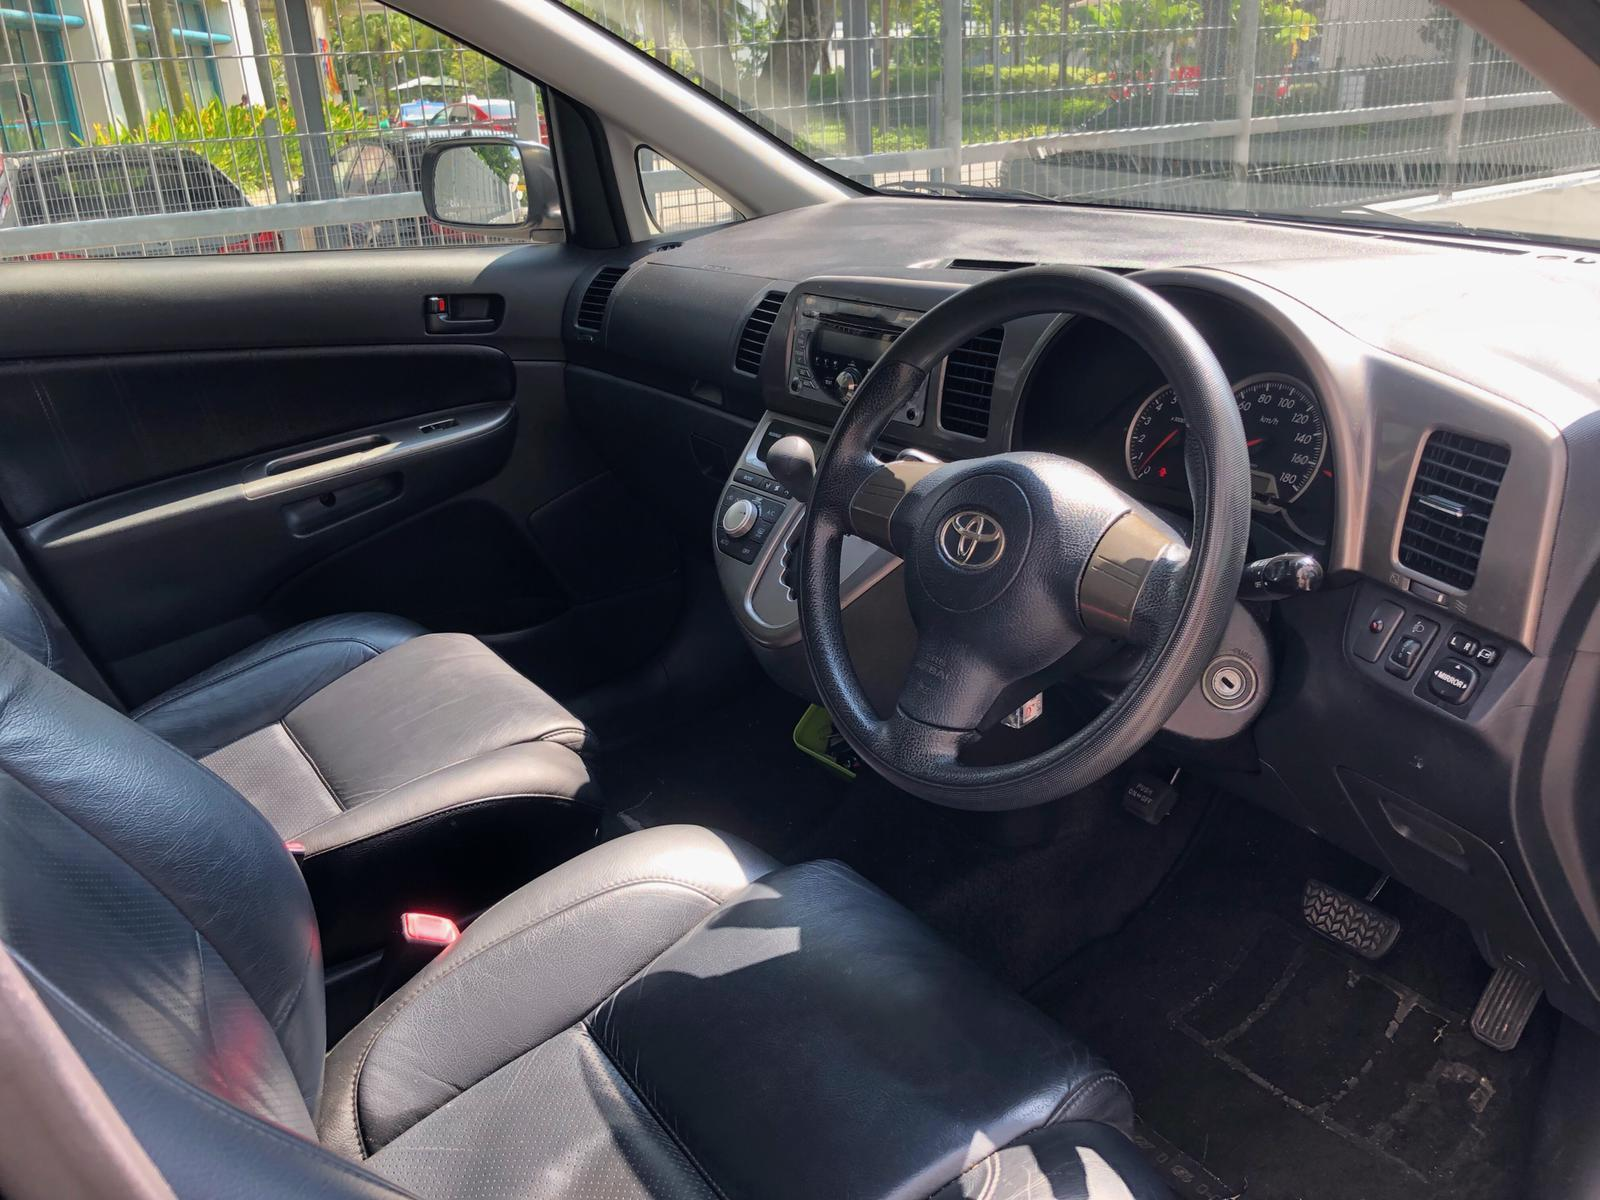 TOYOTA WISH*7 seater mpv*BEFORE GOJEK REBATE Car Axio Premio Allion Camry Honda Stream Civic Cars Hyundai Avante $50 perday PHV  For Rent Grab Rental Gojek Or Personal Use Low price and Cheap